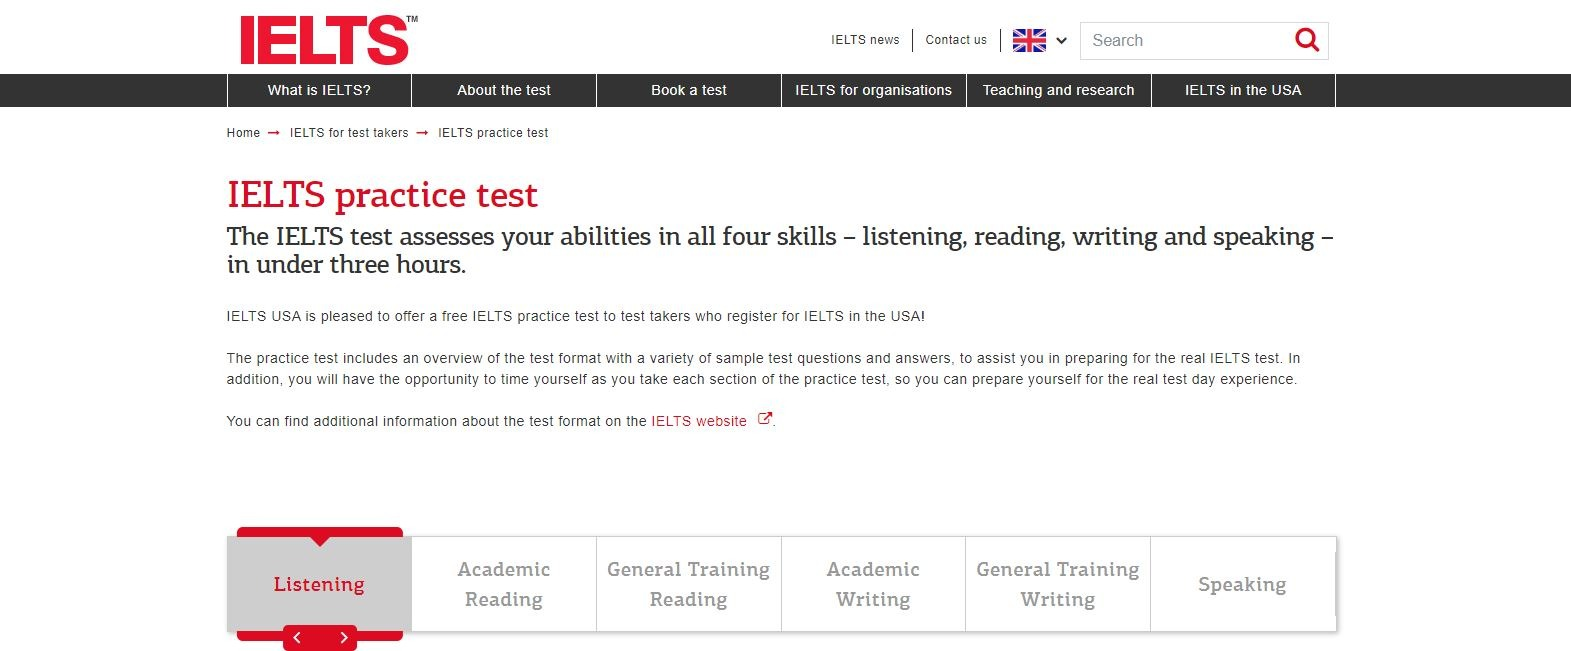 The IELTS test assesses your abilities in all four skills با آزمون آنلاین رایگان آیلتس